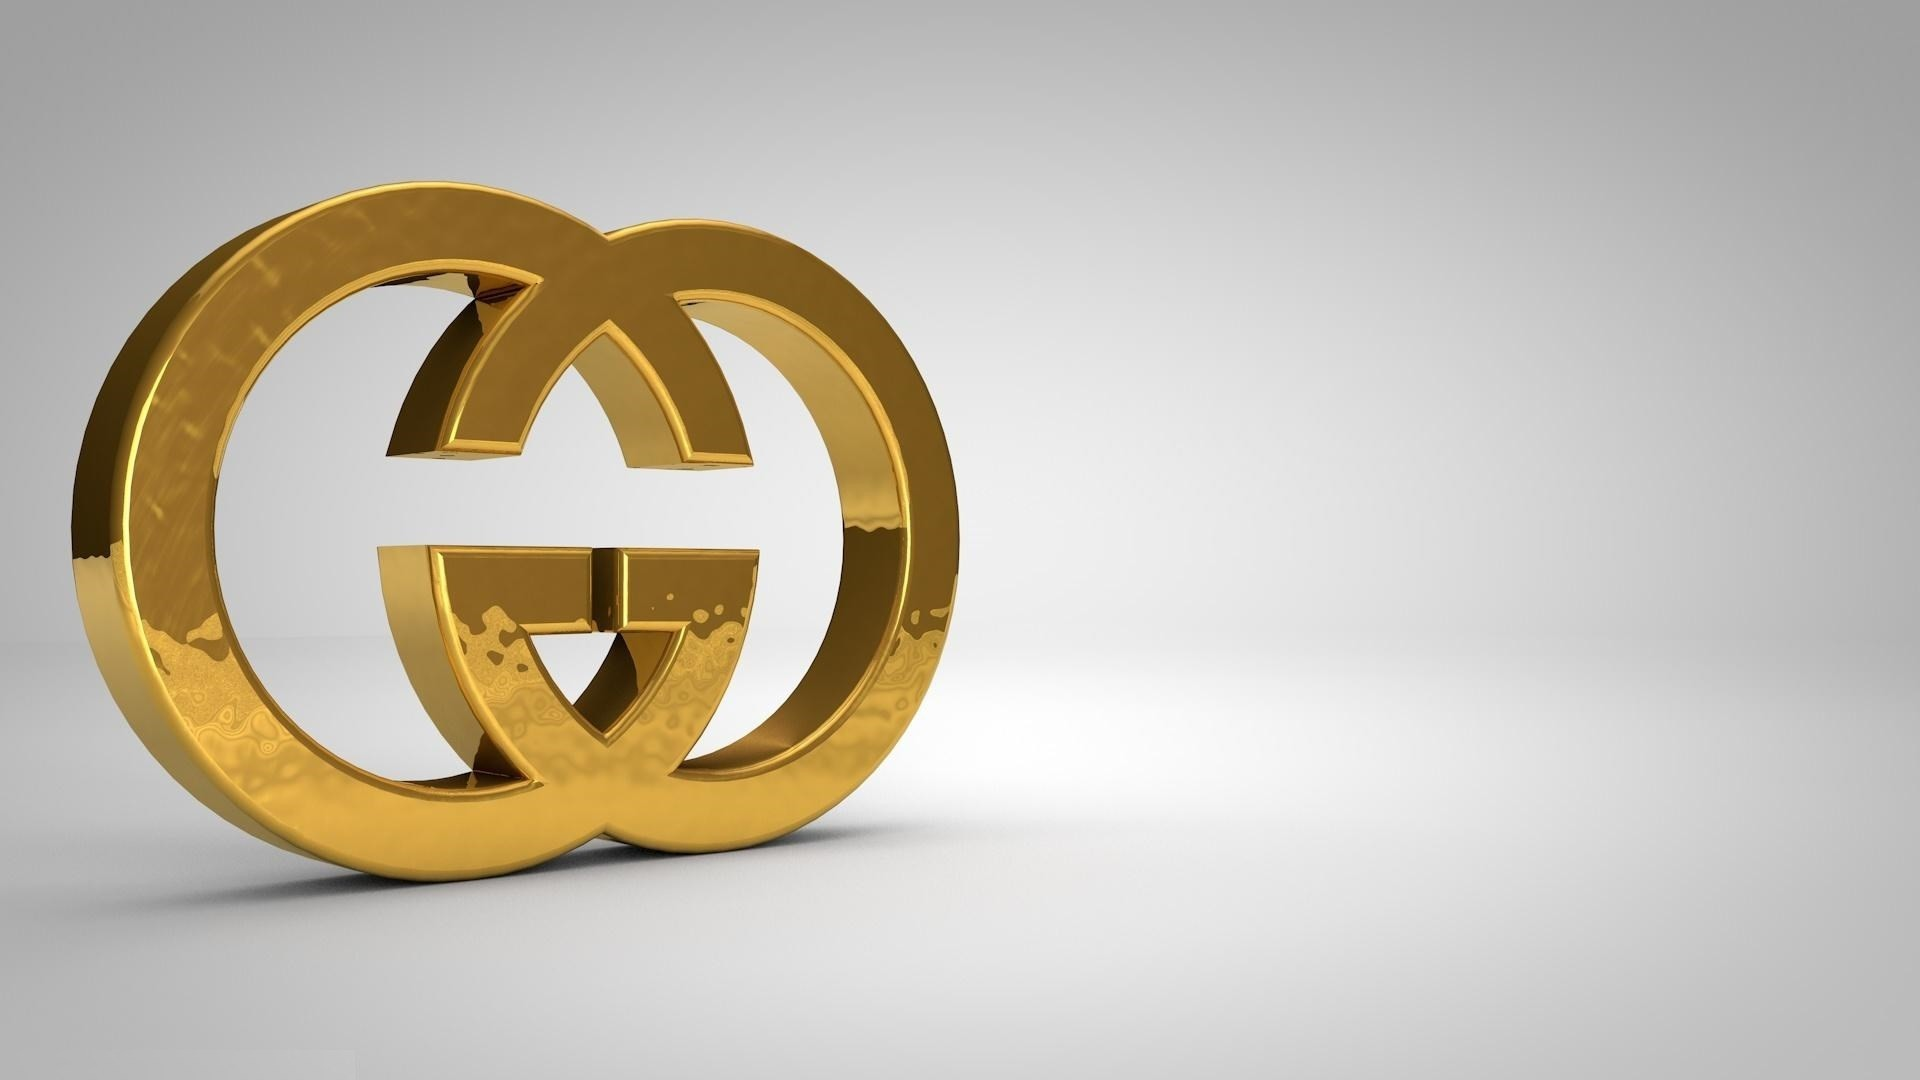 Gucci logo wallpaper 63 images for Gold 3d wallpaper